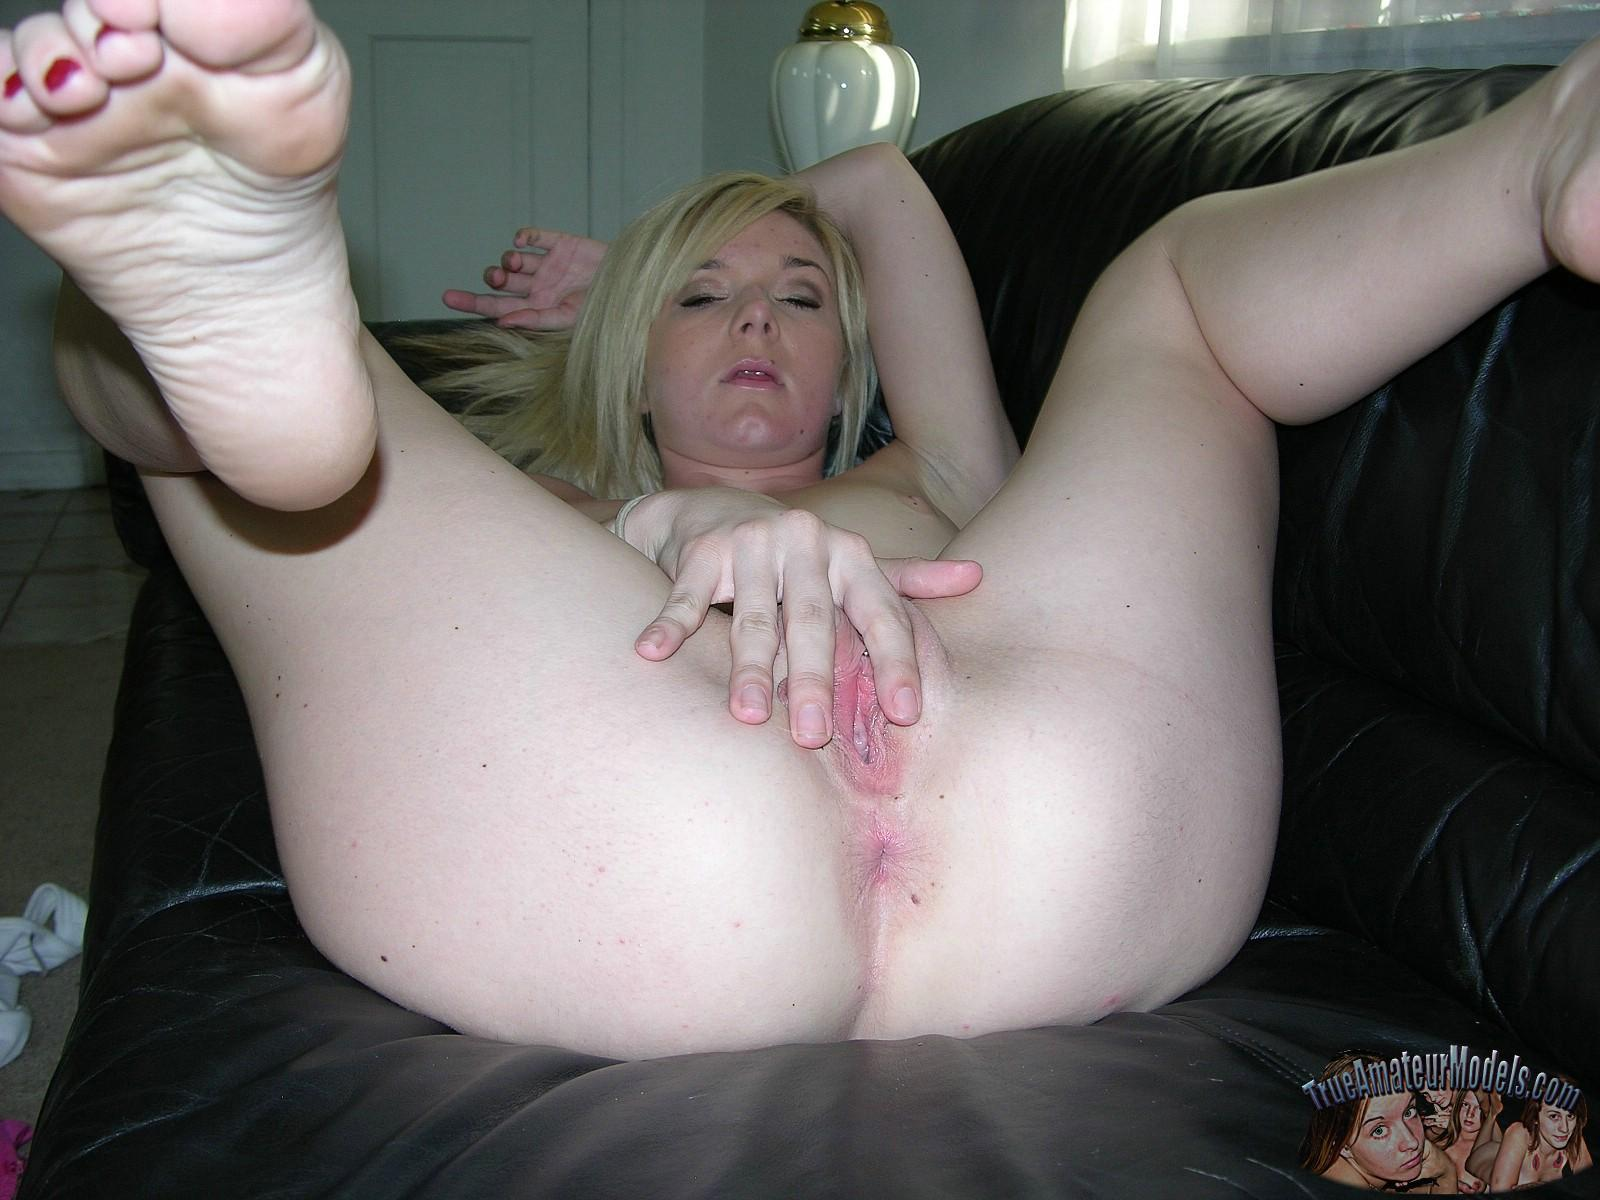 Amateur Blonde Teen Eryka Nude And Masturbating With Her -8738